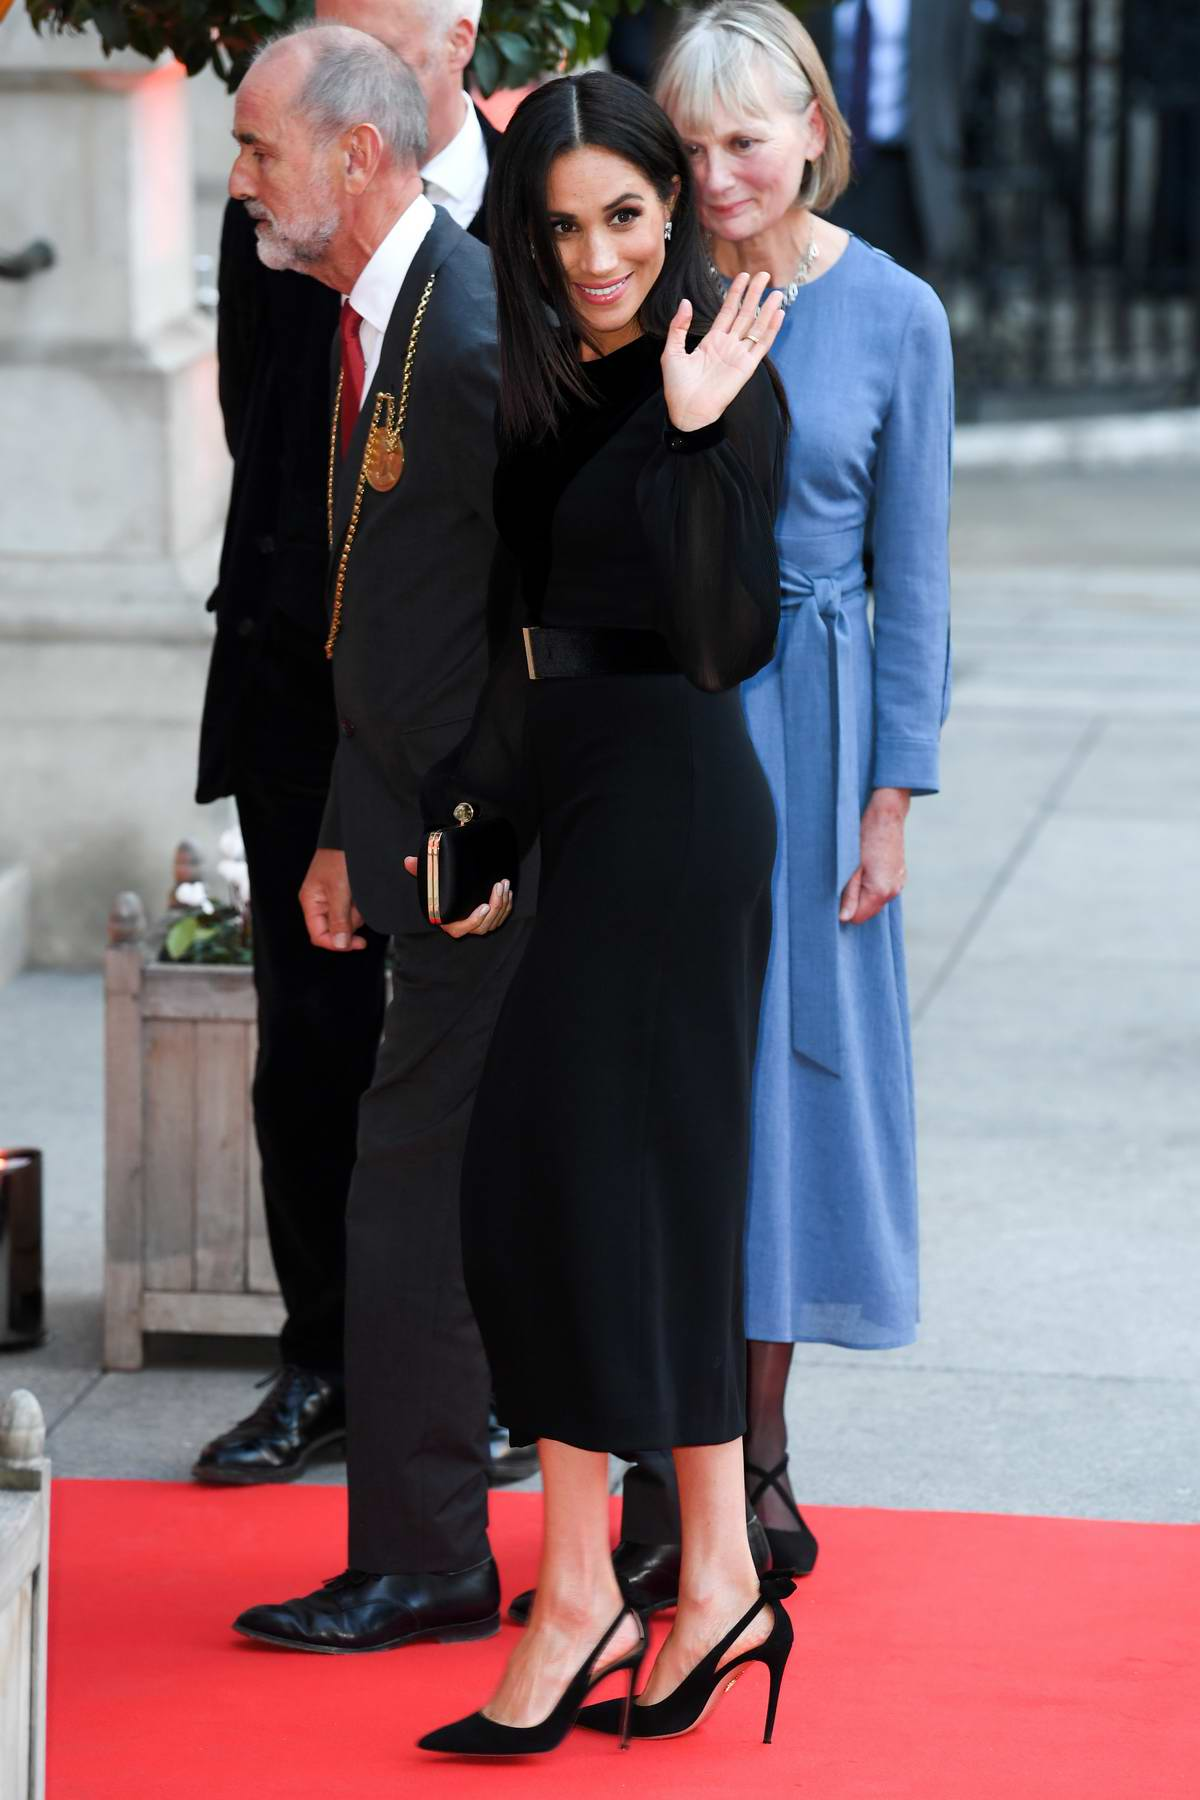 Meghan Markle visiting the 'Oceania' exhibit at the Royal Academy of Arts in London, UK